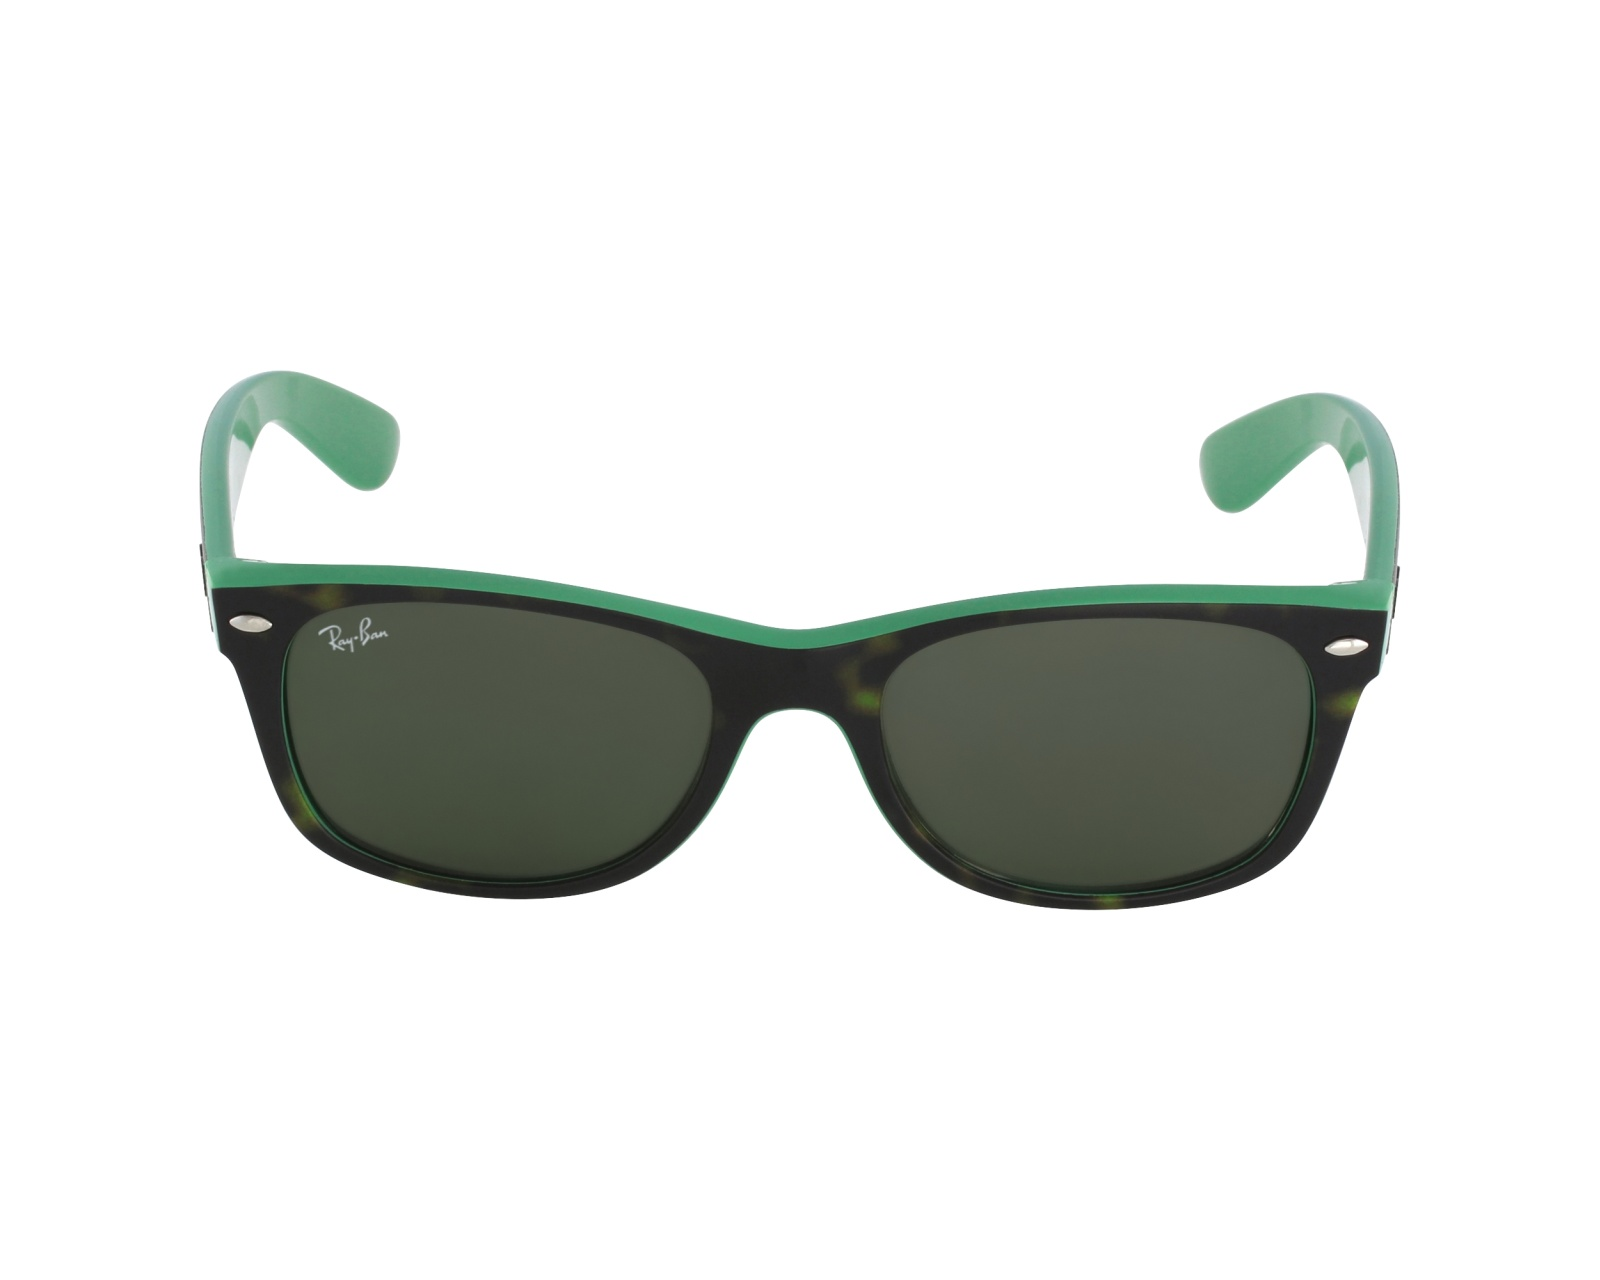 6bdc92eccb6a Sunglasses Ray-Ban RB-2132 6013 - Havana Green profile view